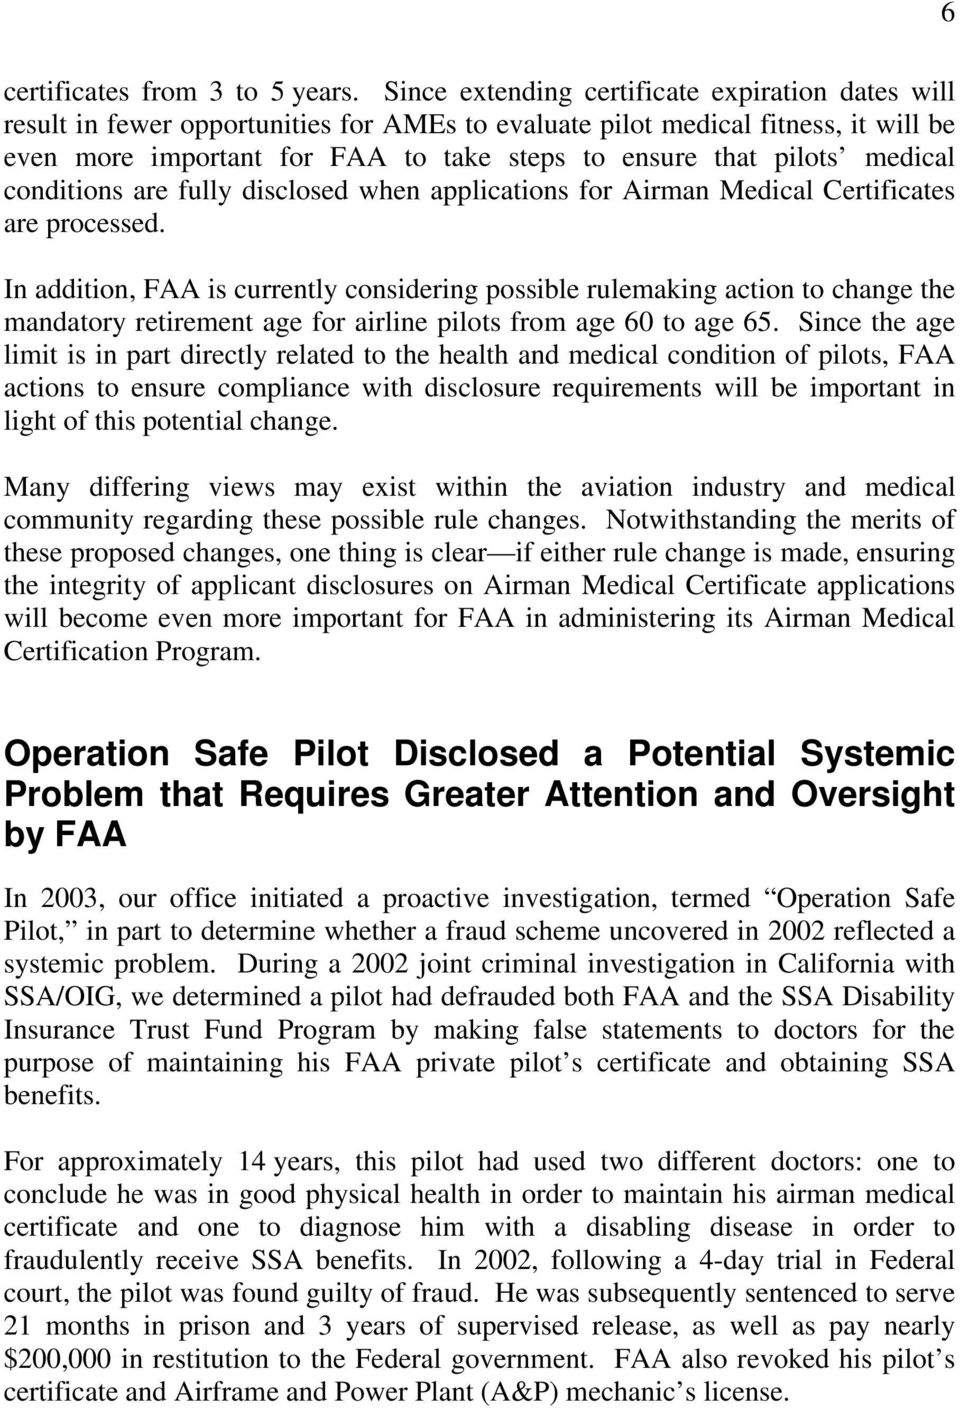 Falsification Of Faa Airman Medical Certificate Applications By